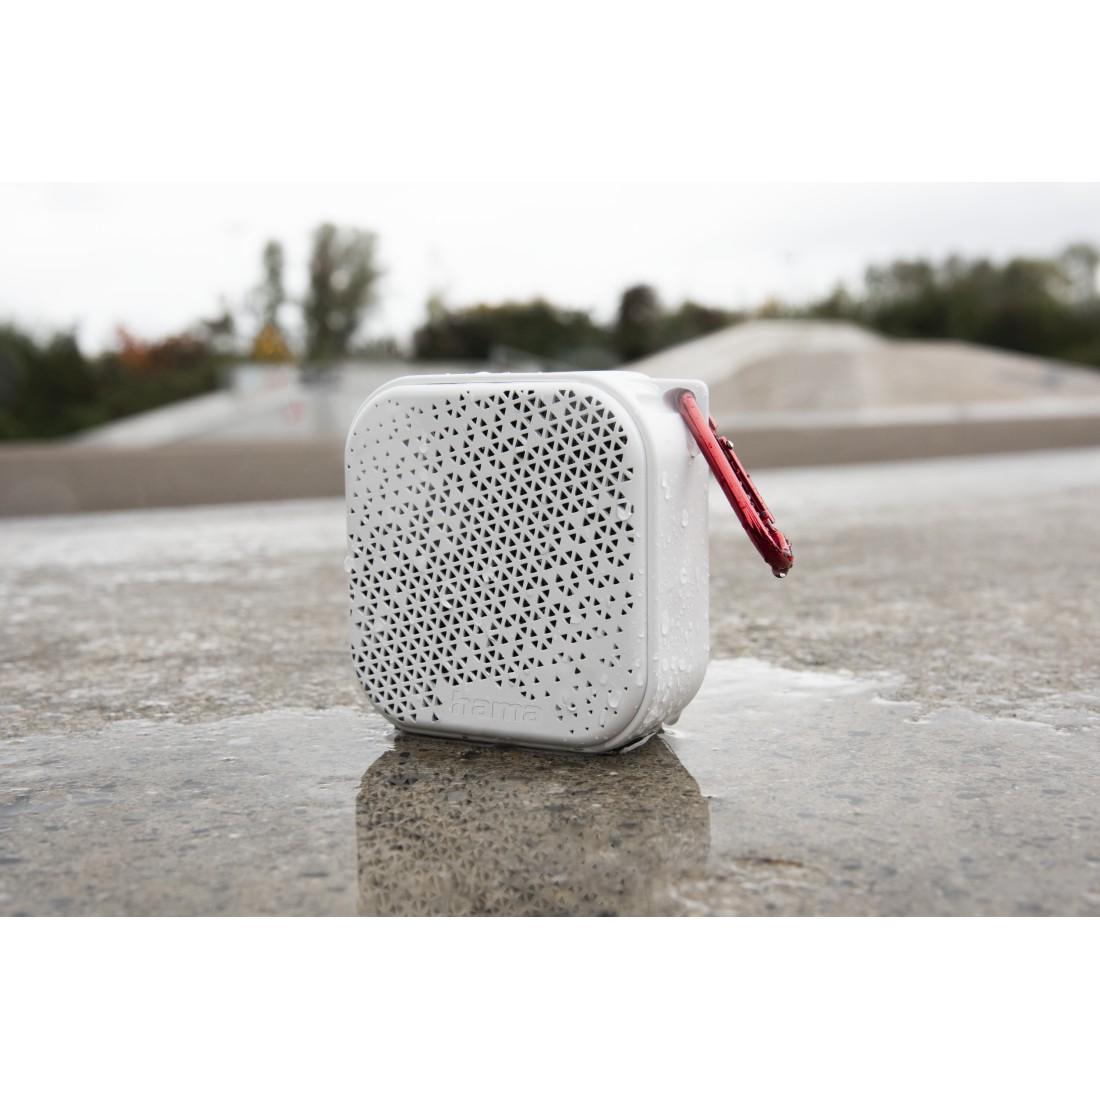 "awx4 High-Res Appliance 4 - Hama, Bluetooth® ""Pocket 2.0"" Loudspeaker, Waterproof, 3.5 W, white"